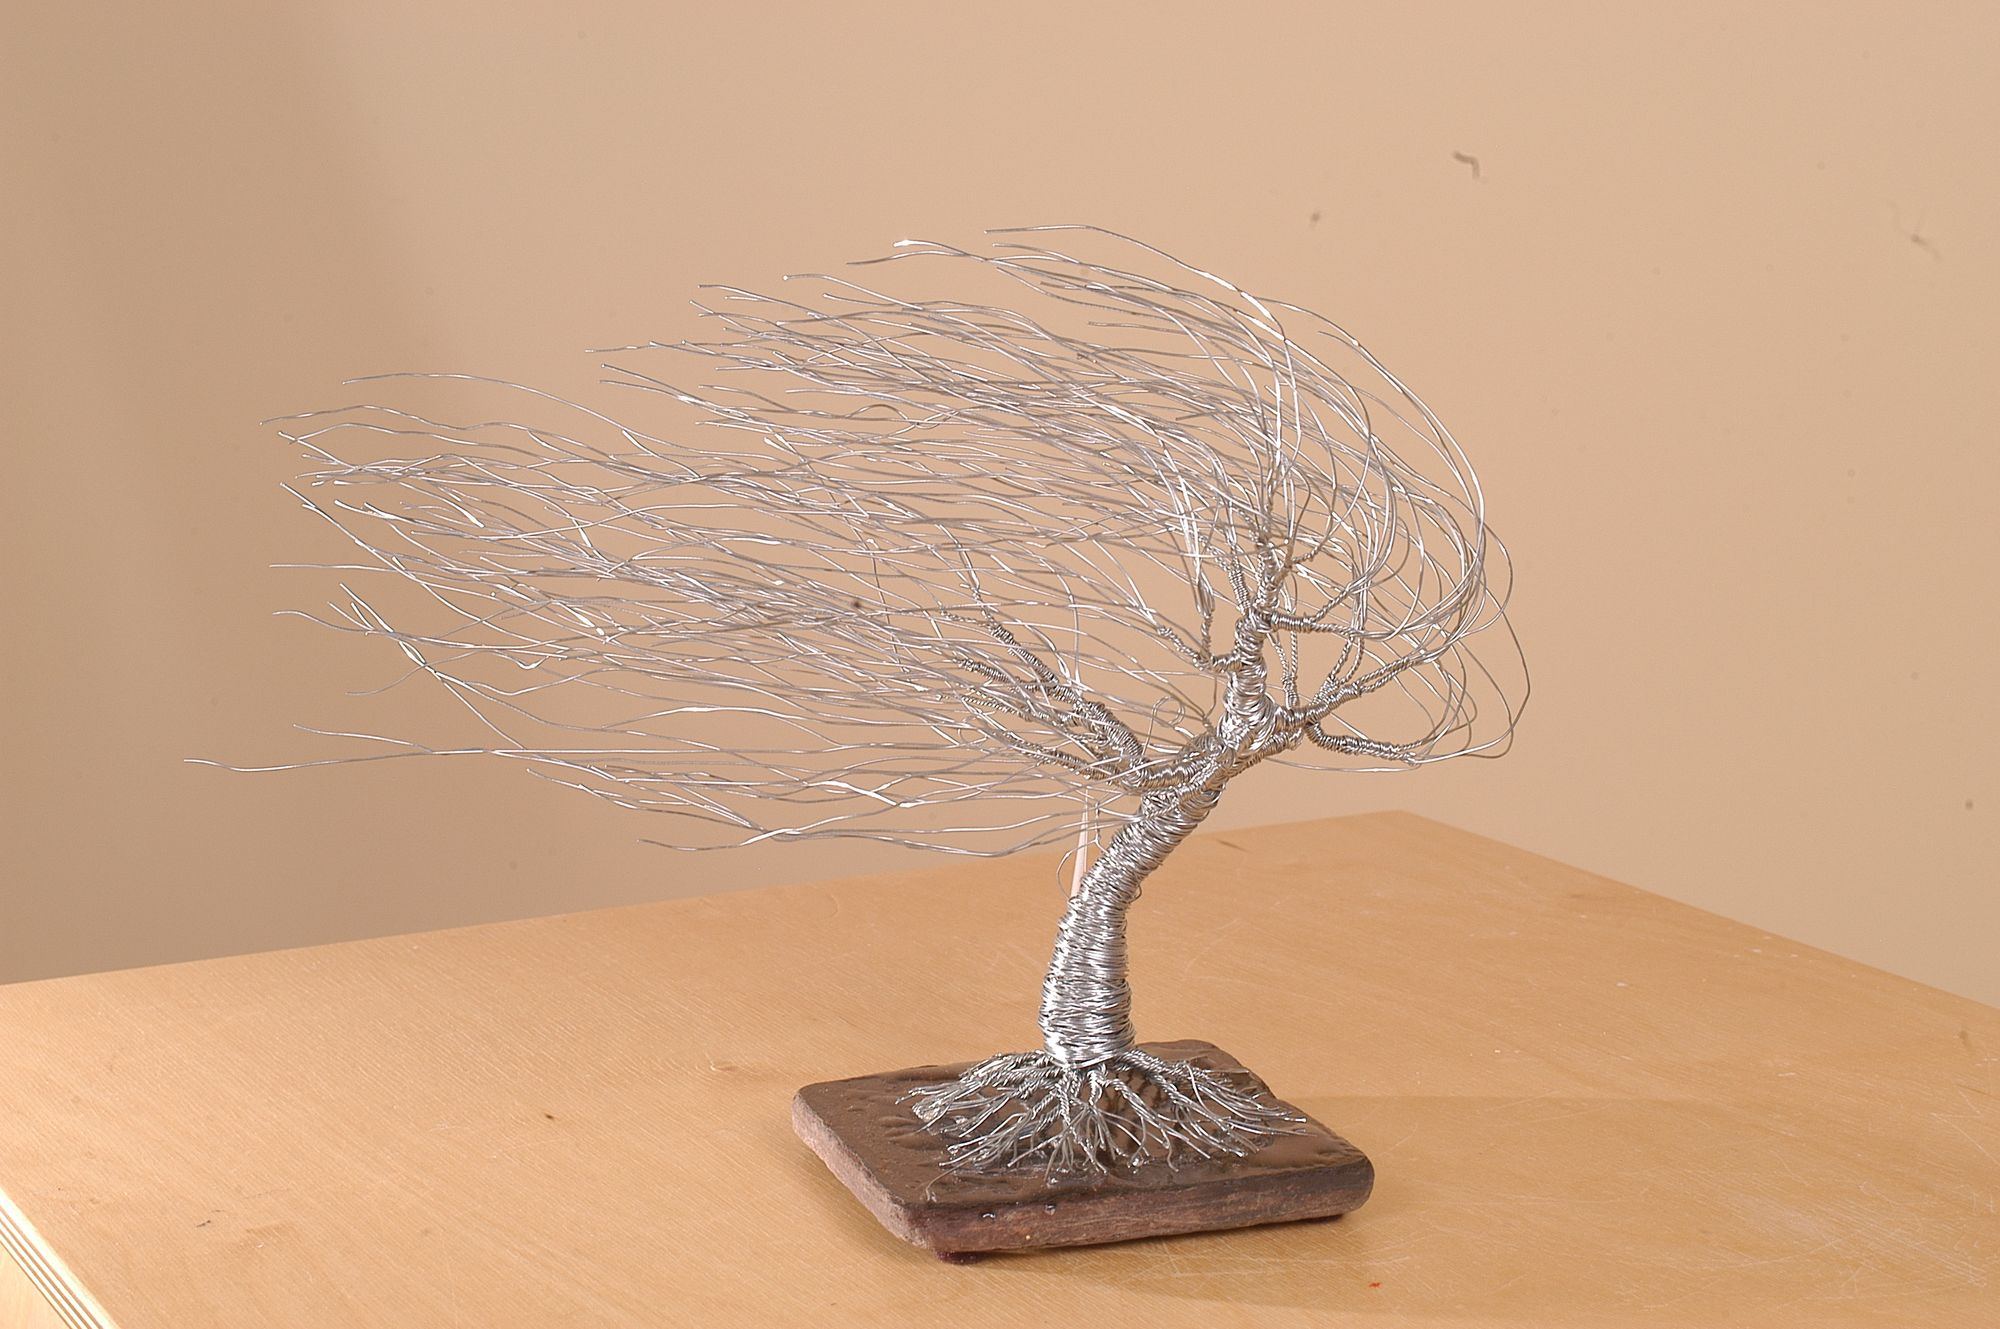 Asheville Art Gallery Contemporary Mountain Crafts Bonsai Tree Wiring Video Each Is Unique And Made From Over A 1000 Individual Strands Of Wire It Twisted By Hand Using Simple Tools Creativity